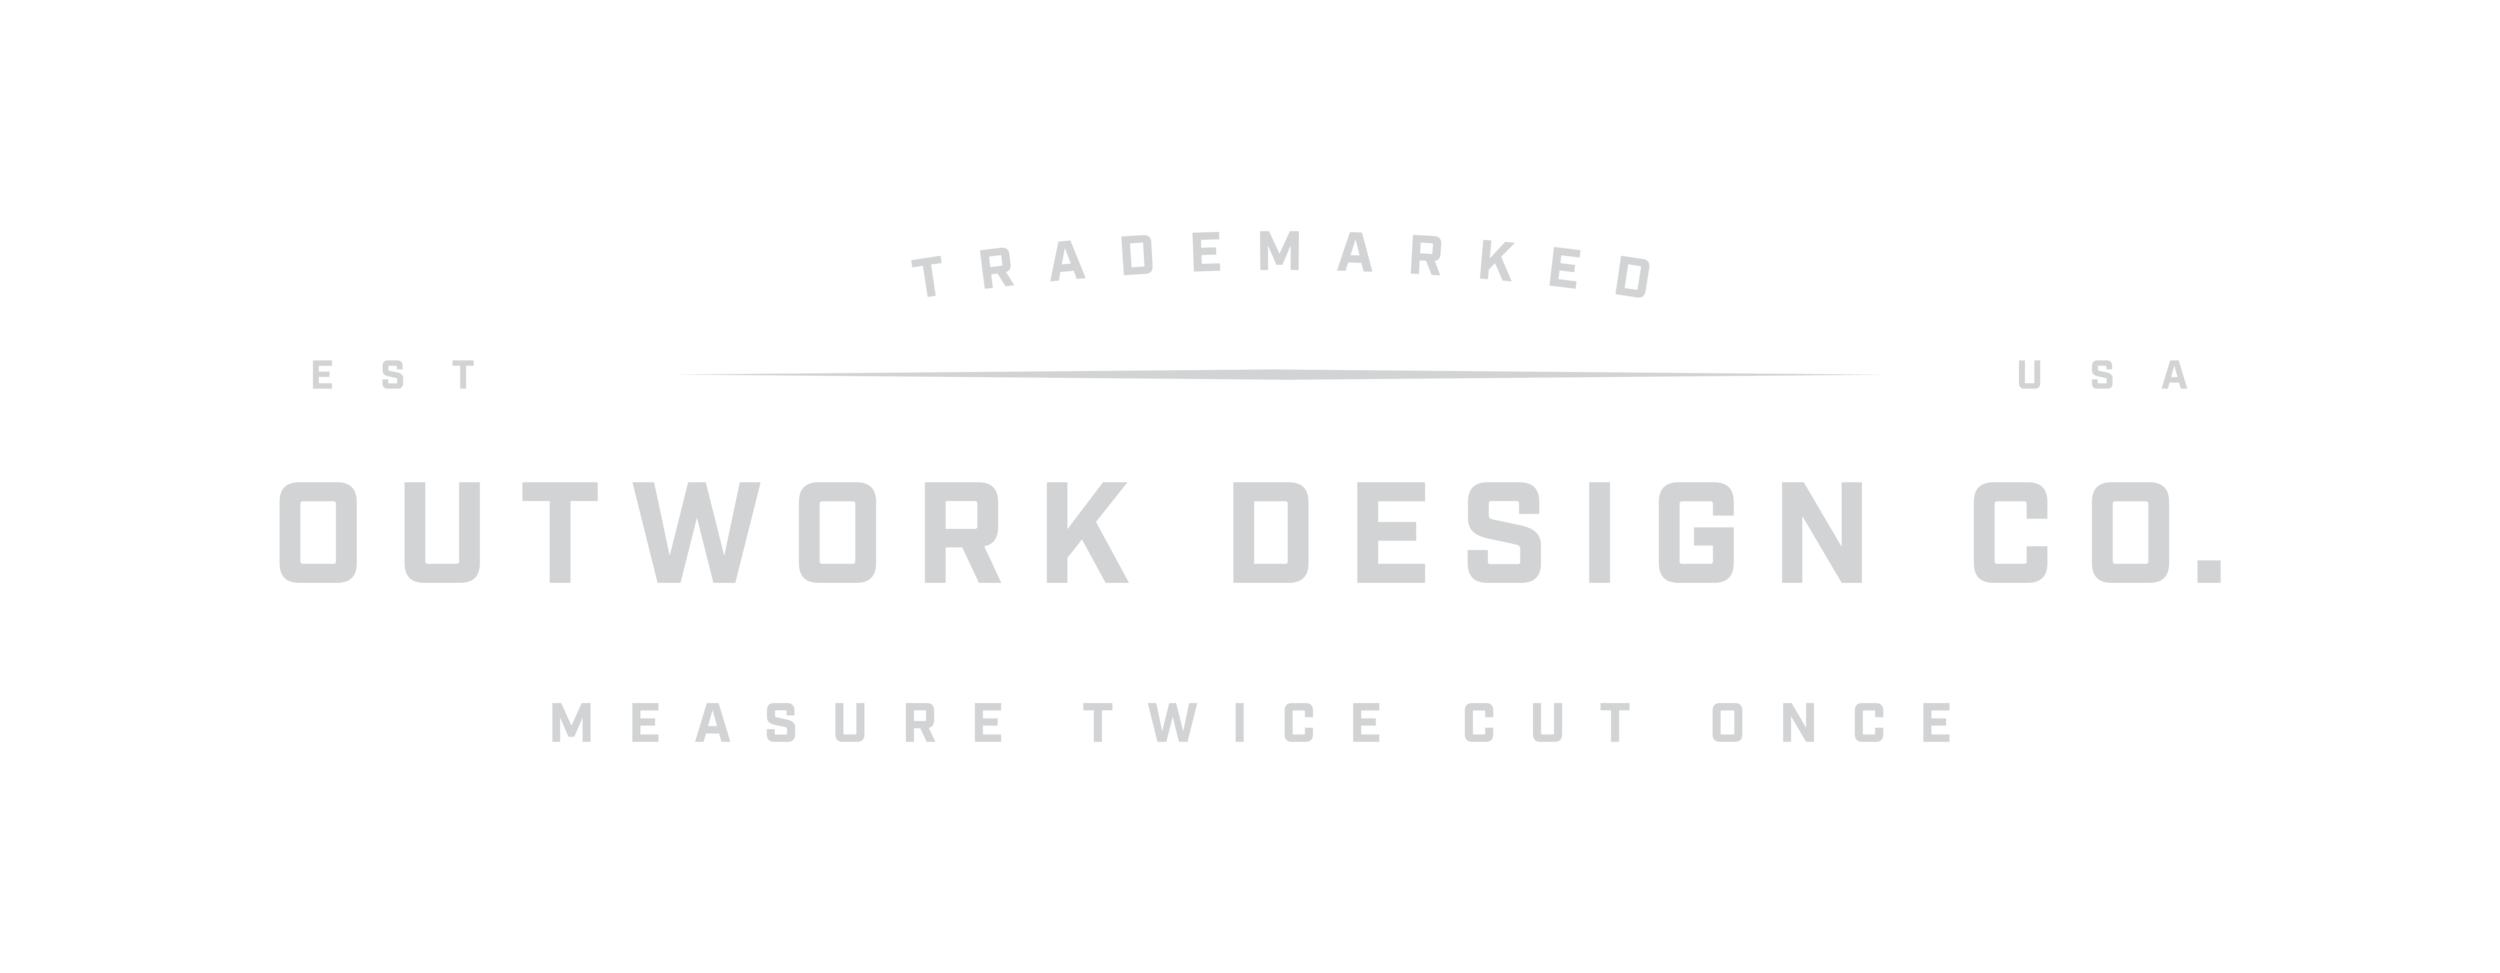 outwork_logo-02.png